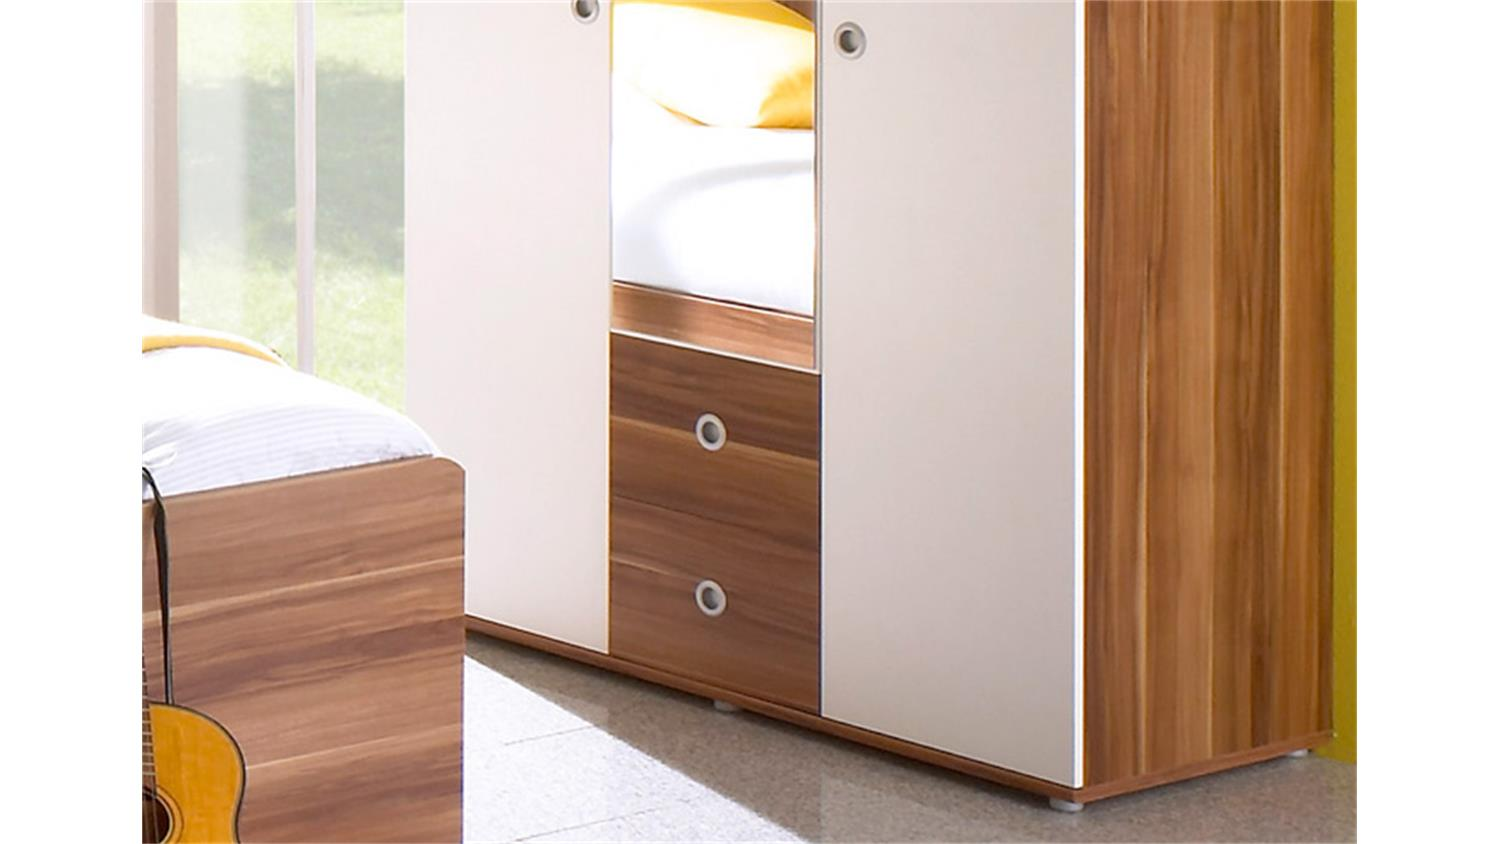 kleiderschrank wiki 3 t riger schrank in walnuss und wei. Black Bedroom Furniture Sets. Home Design Ideas